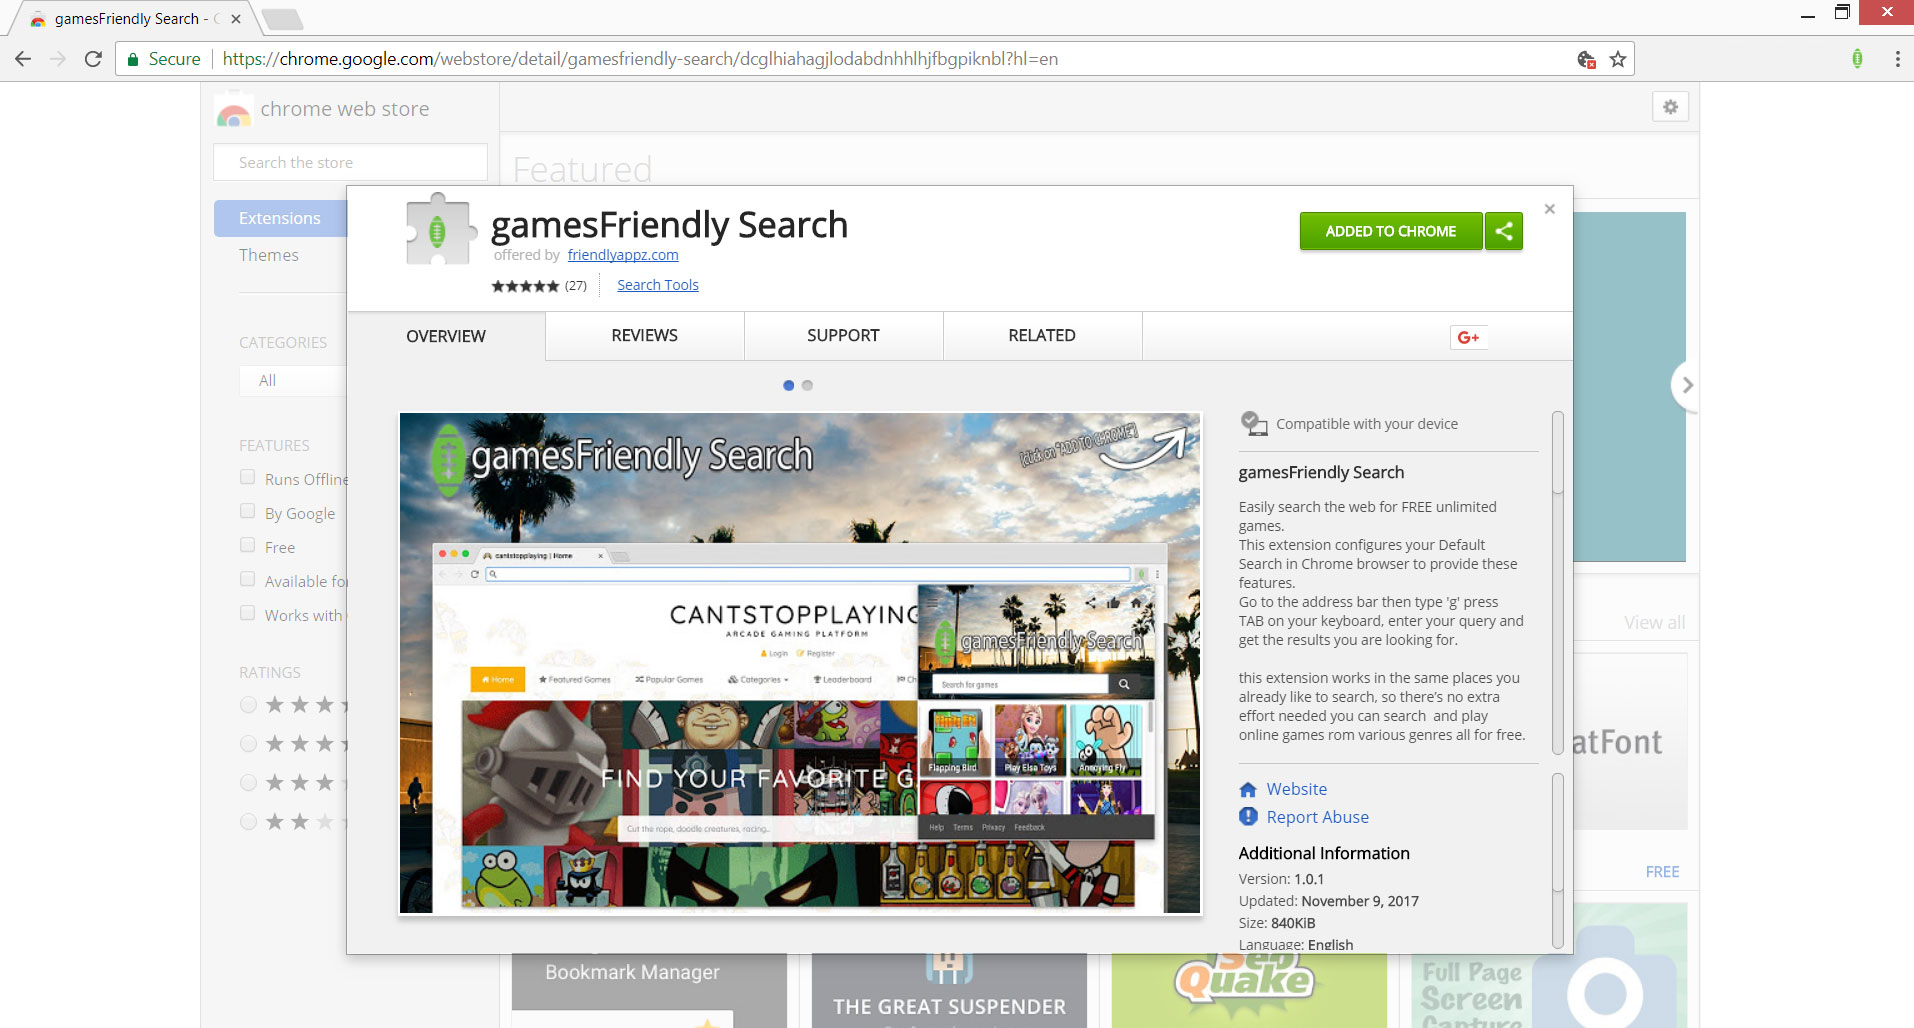 gamesfriendly-search-browser-extension-chrome-web-store-stf